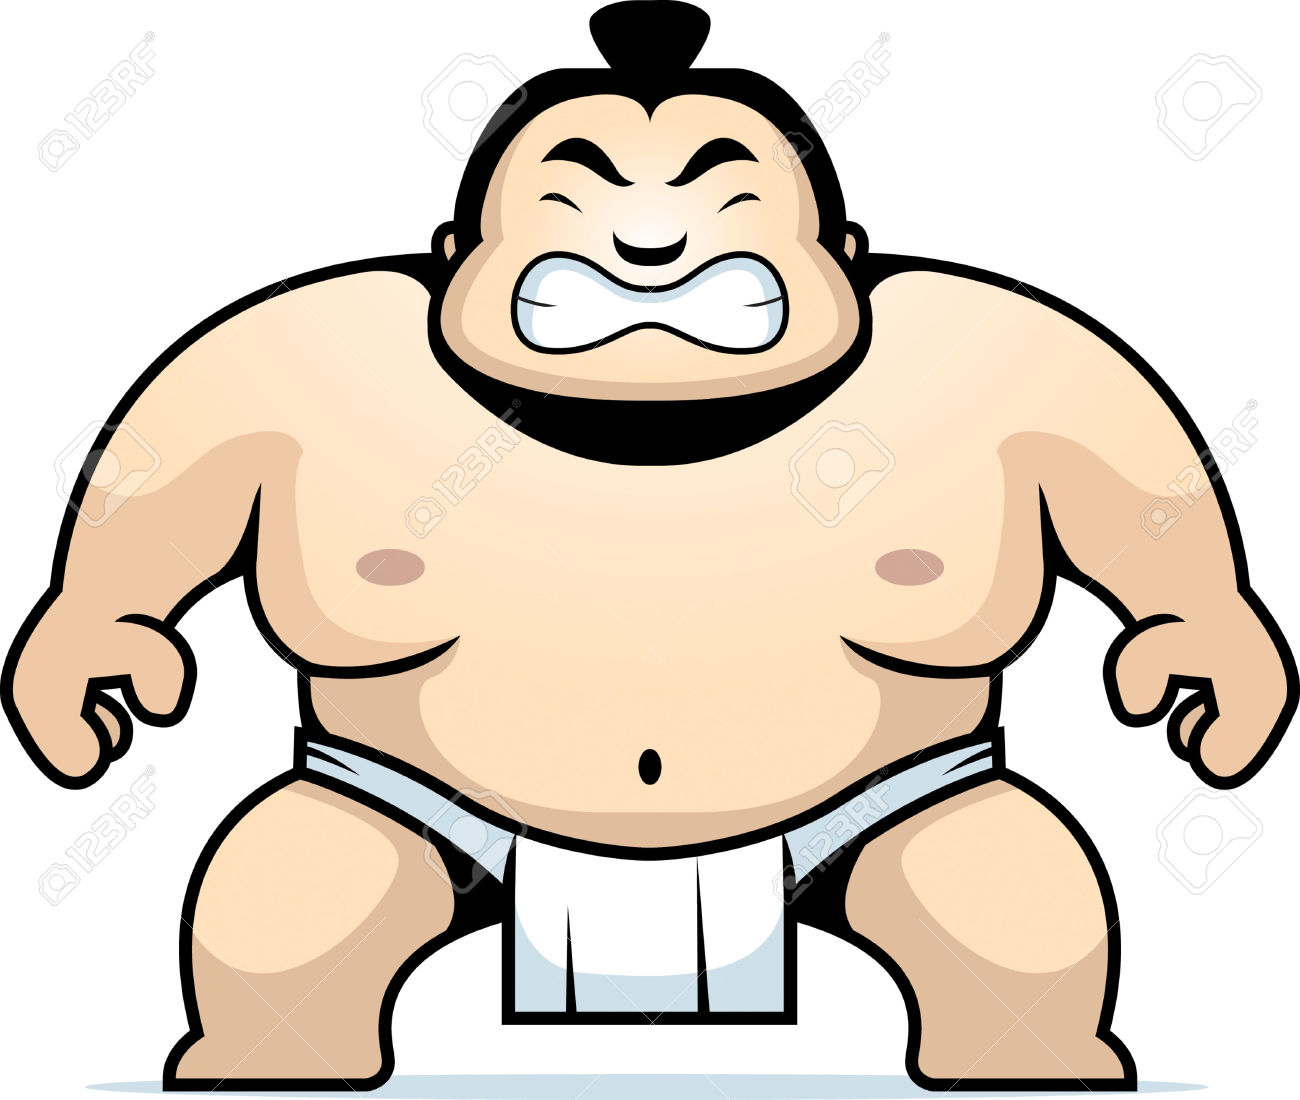 948 Sumo Stock Vector Illustration And Royalty Free Sumo Clipart.